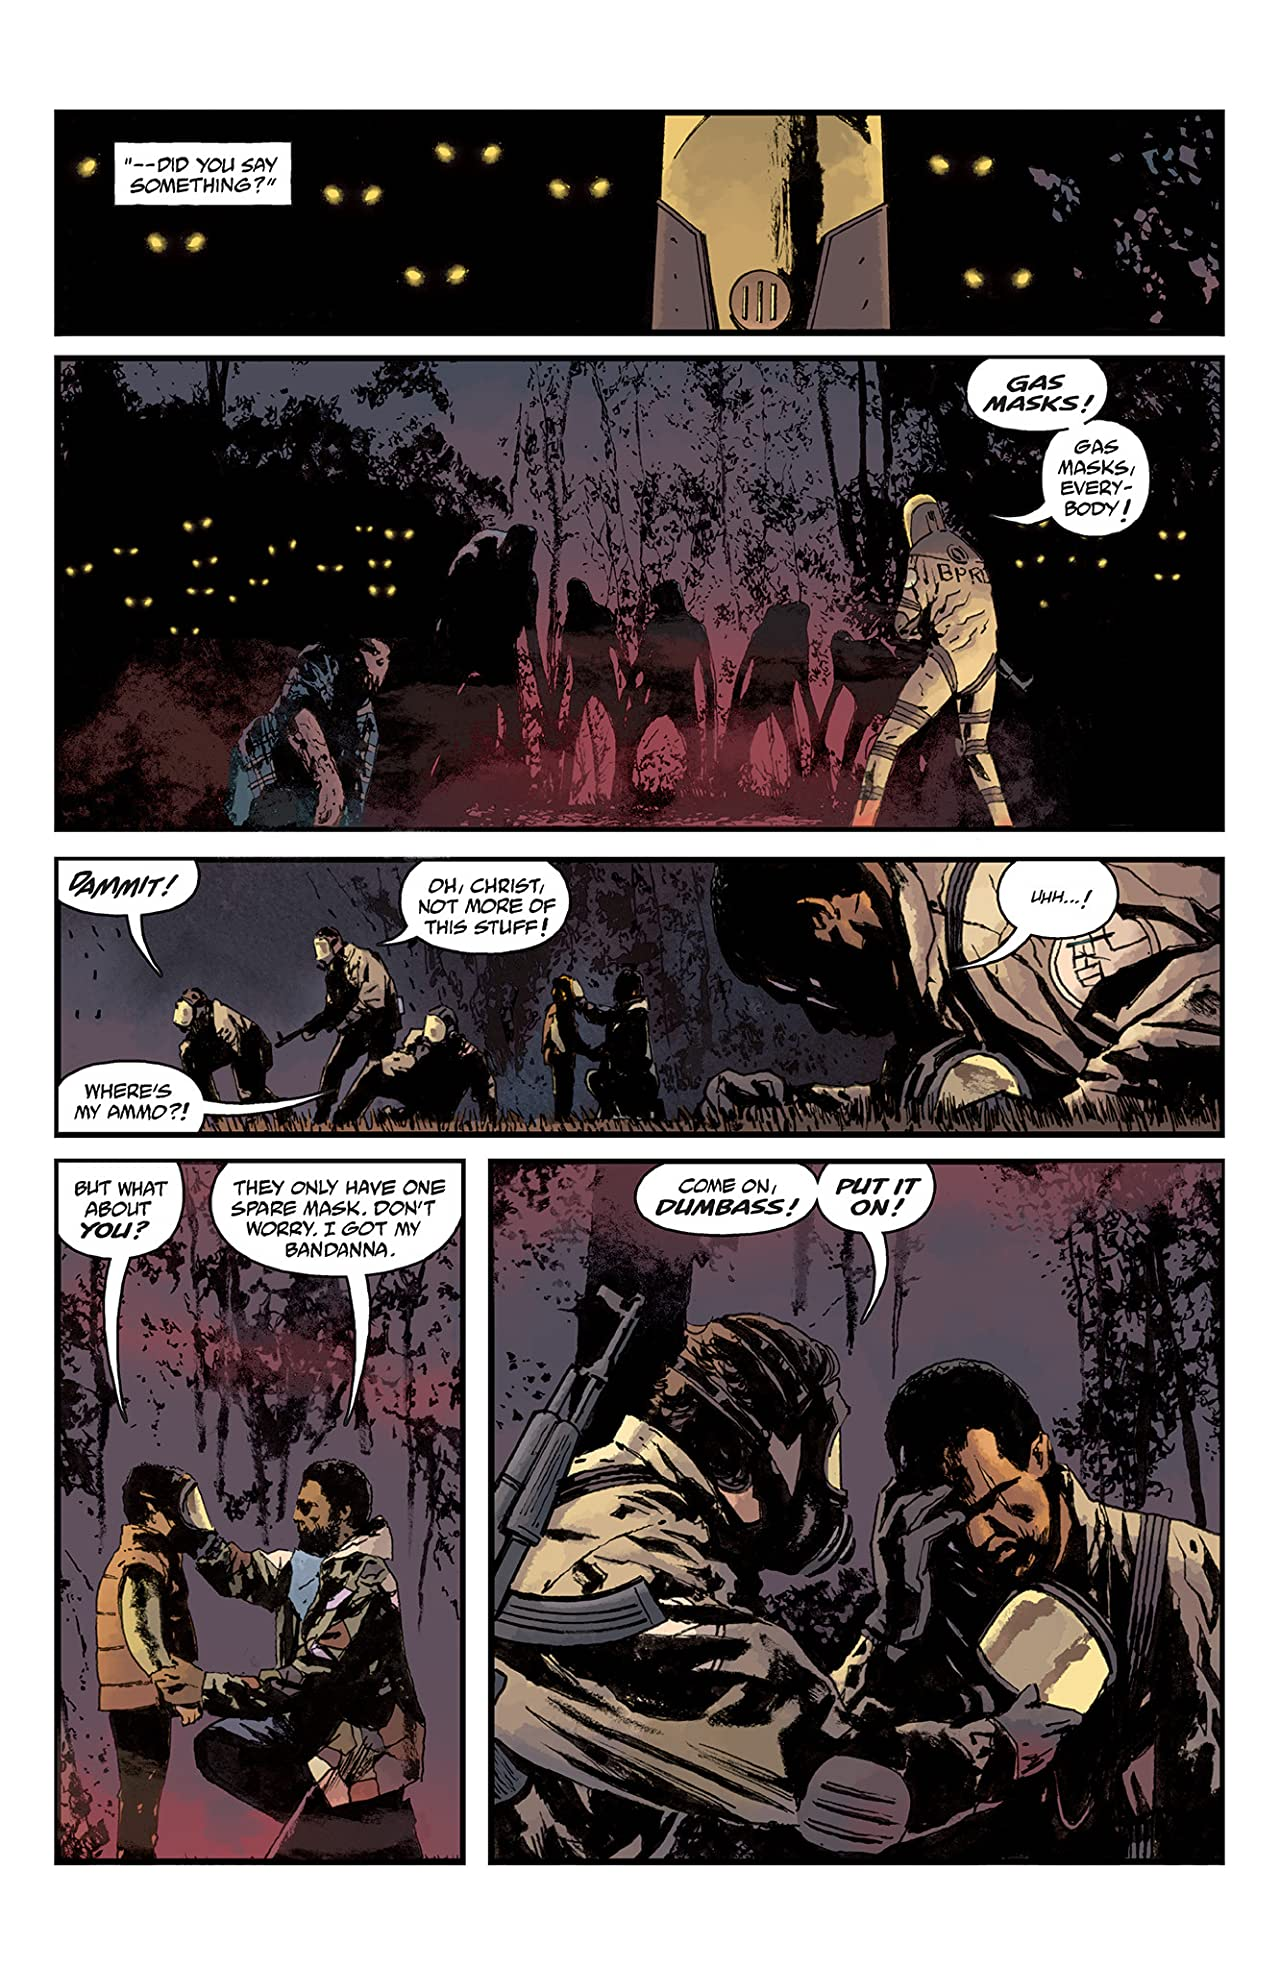 B.P.R.D.: Hell on Earth #108: Wasteland part 2